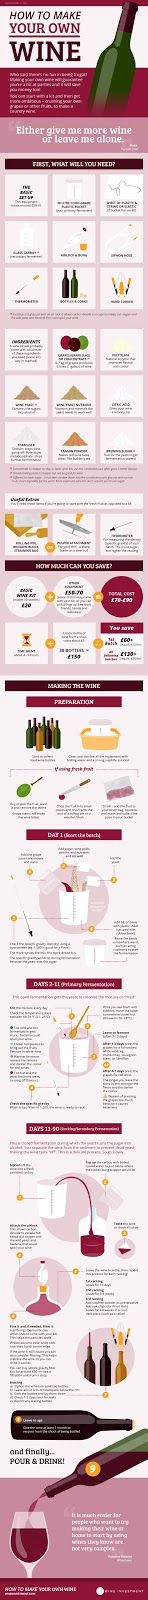 Crazy Infographics: How to Make Your Own Wine (Infographic)